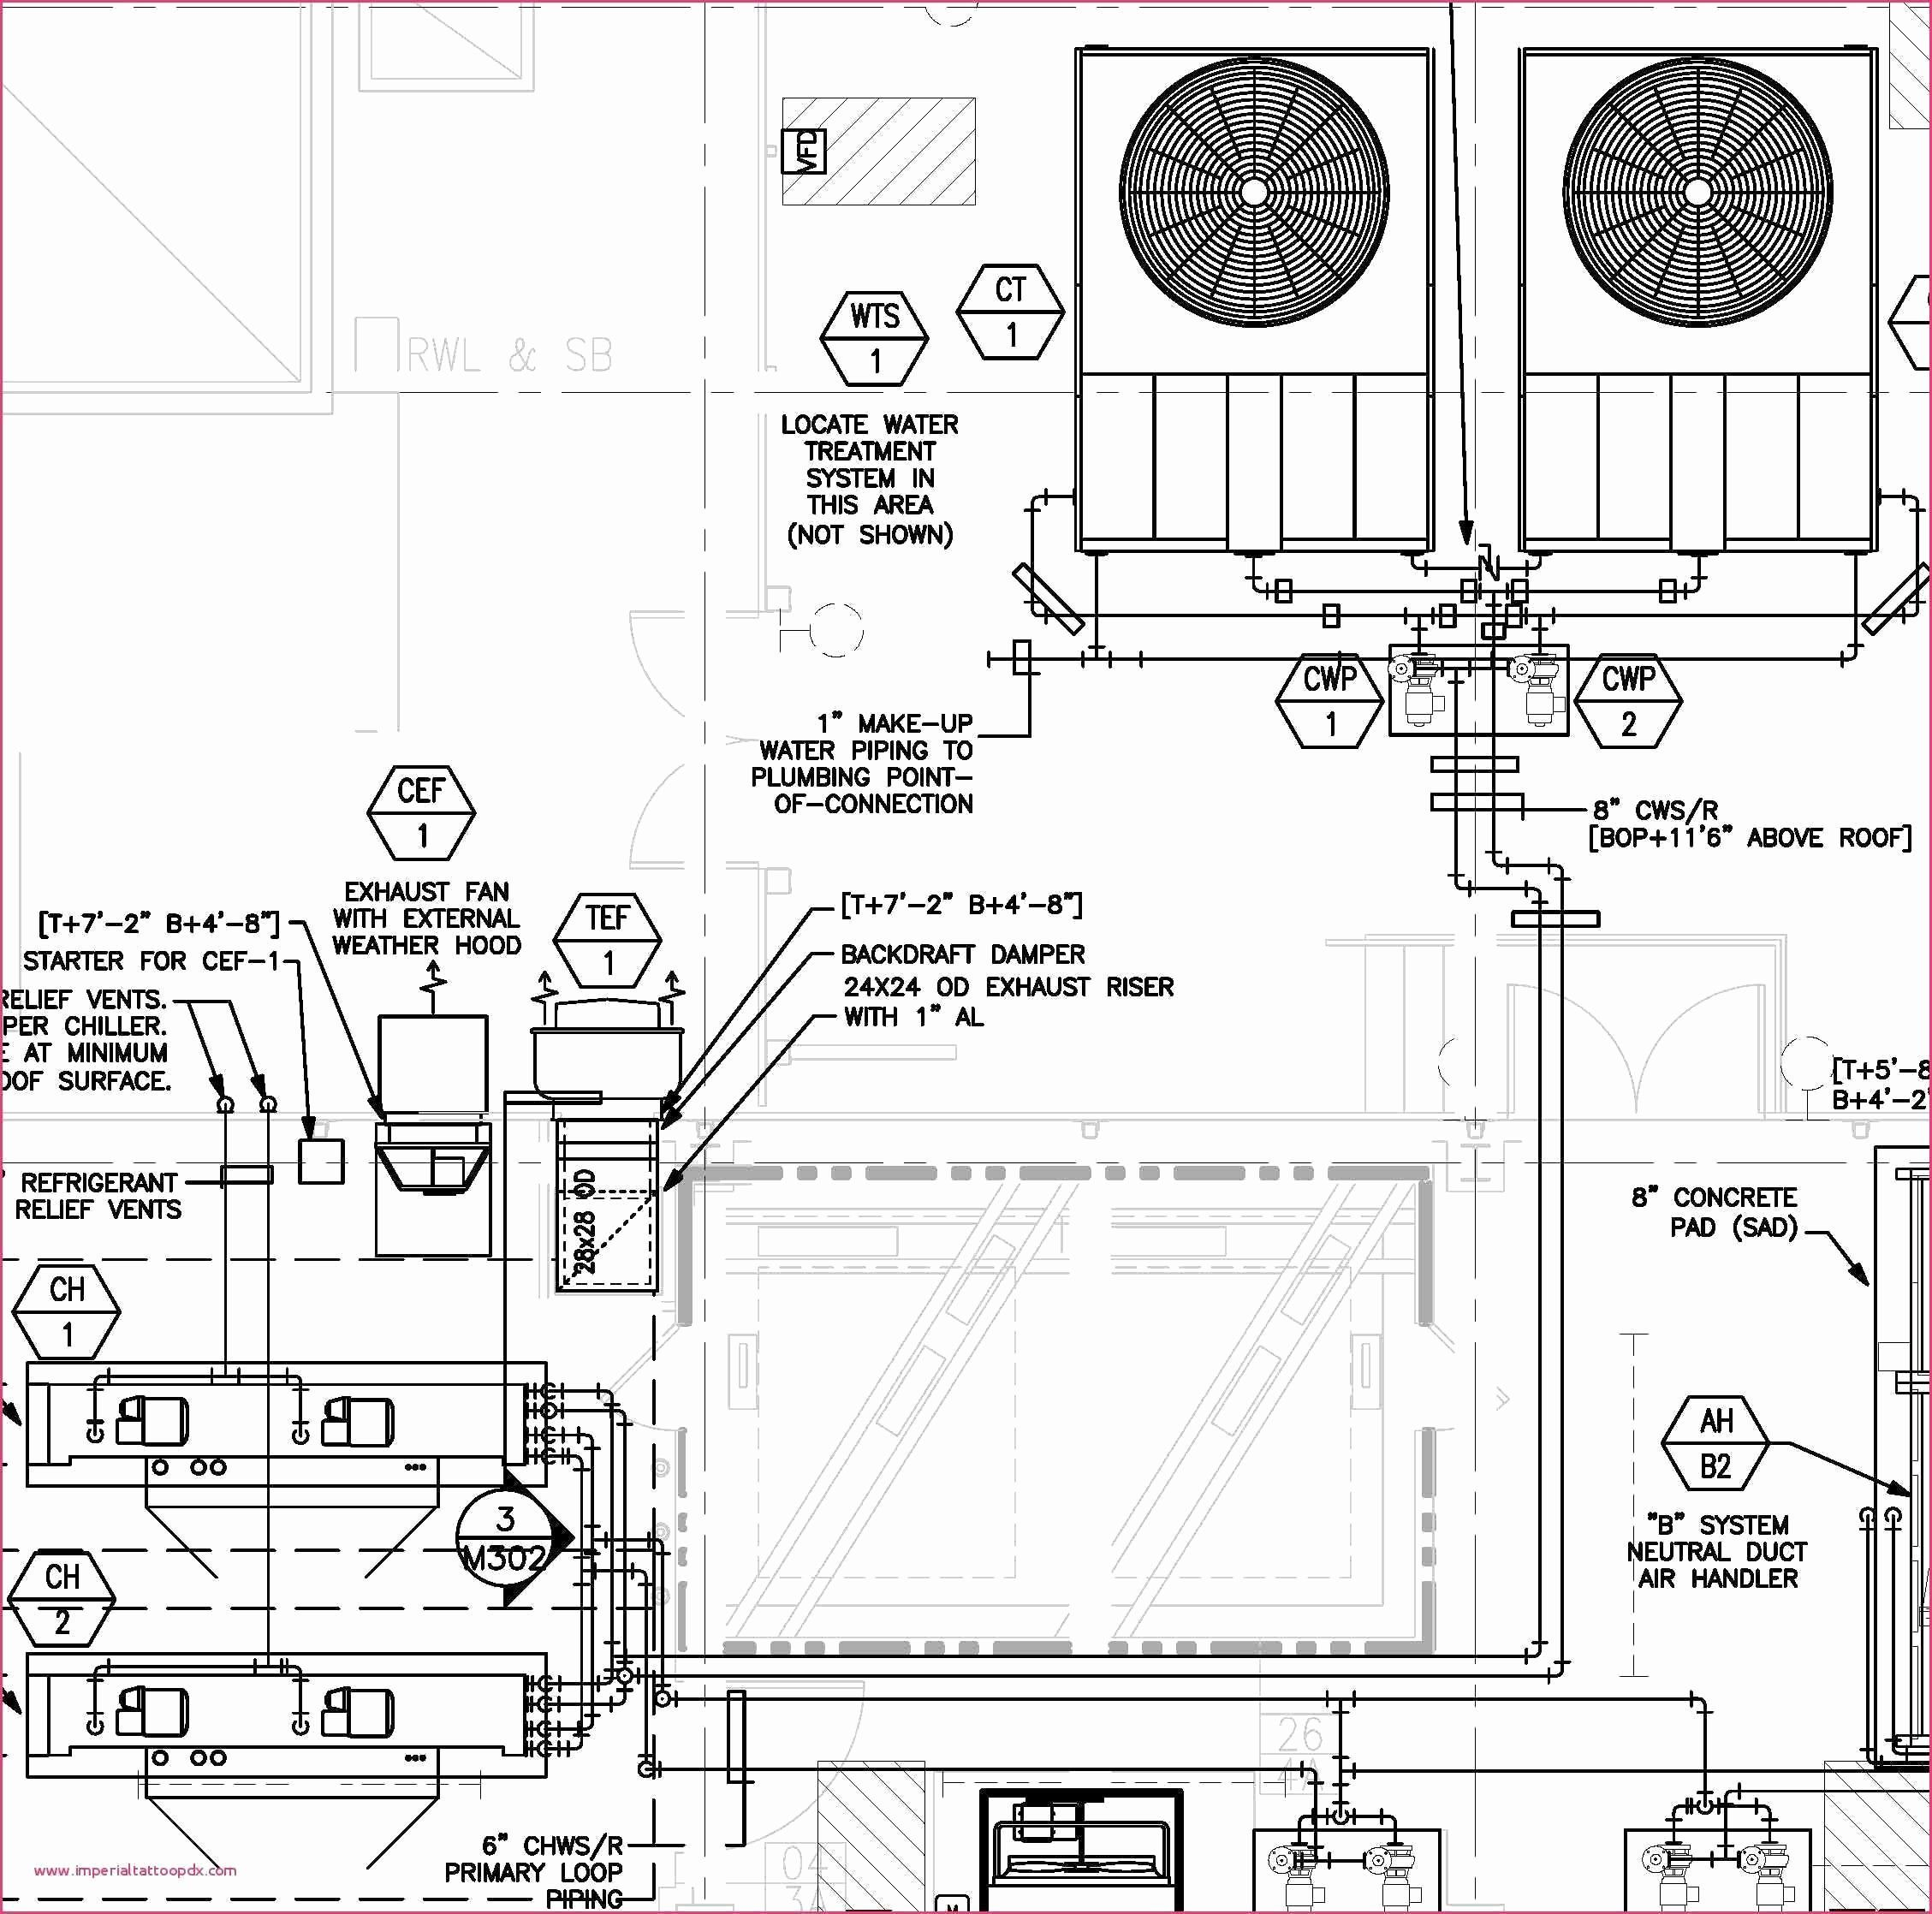 Civil Engineering Drawing Book Pdf Free Download Unique Excel Spreadsheet Drawing In 2020 Craftsman Garage Door Garage Design Craftsman Garage Door Opener